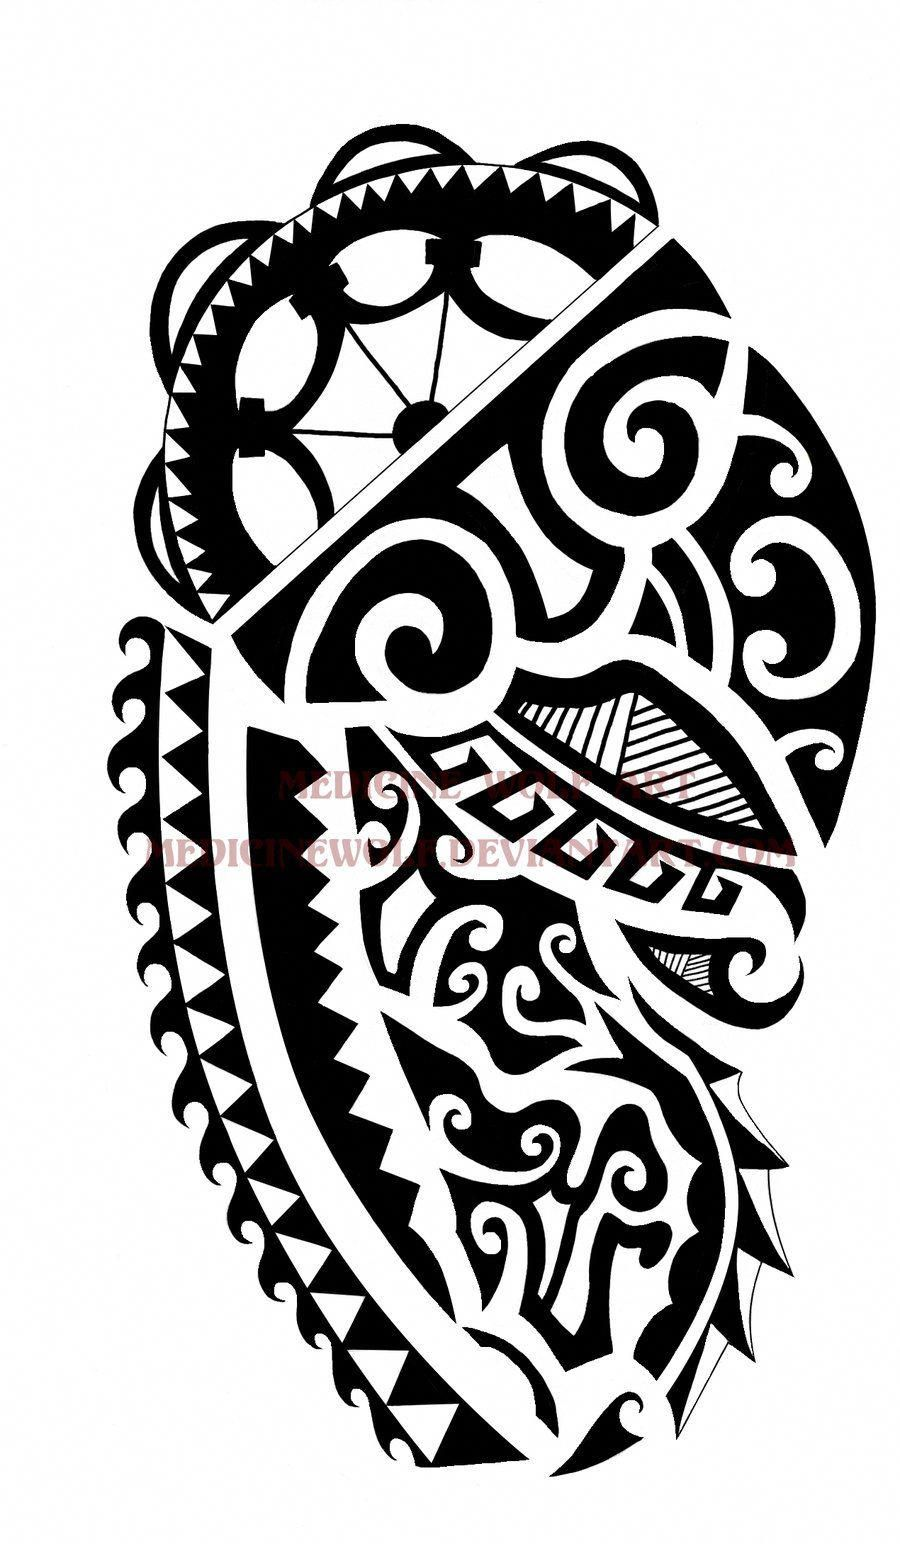 samoan tattoos design lion on paper Samoantattoos